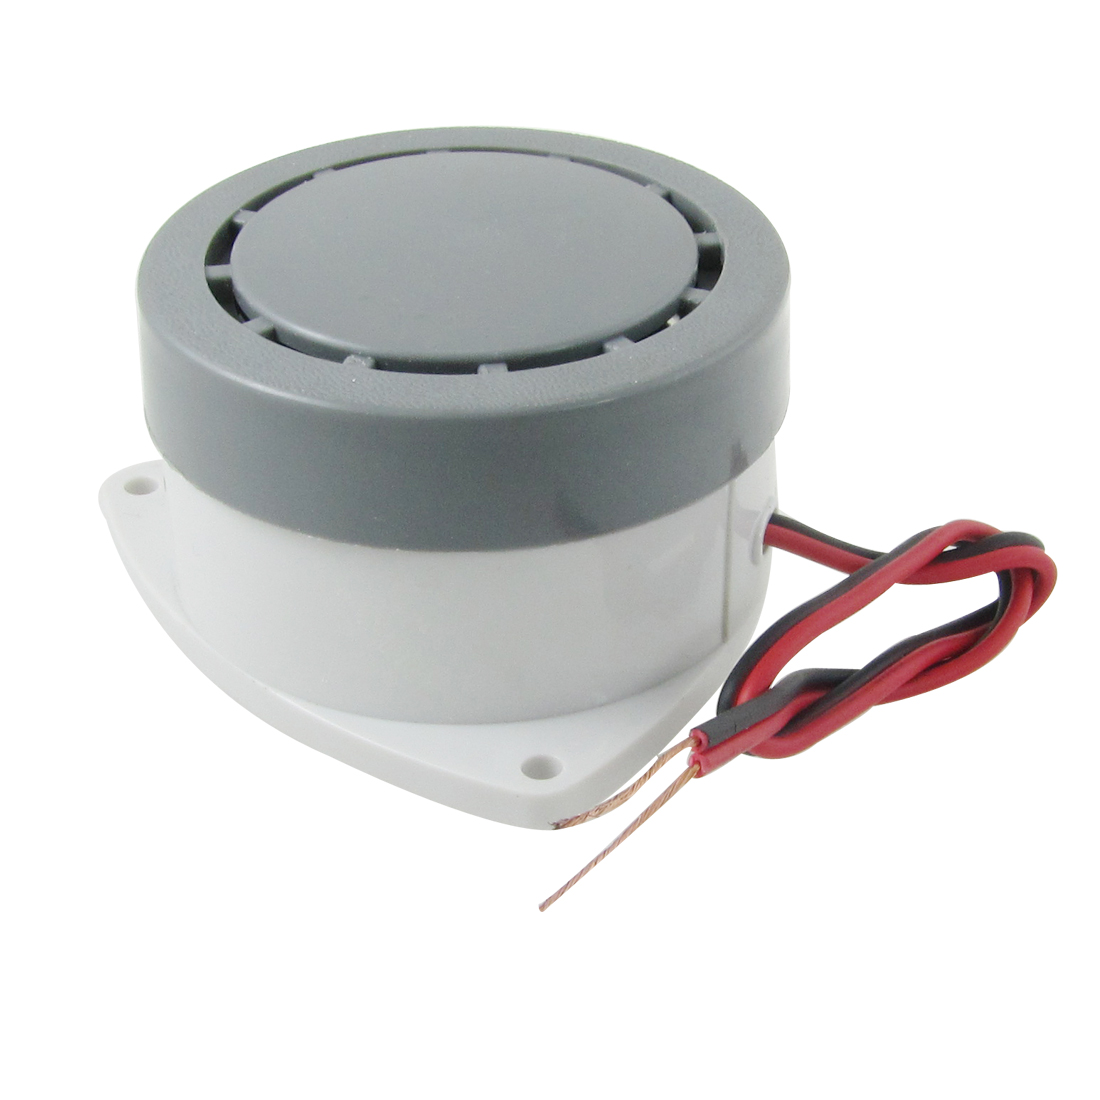 HRB-N80-Industrial-Flush-Mounting-Alarm-Panel-Buzzer-AC-200-220V-80dB